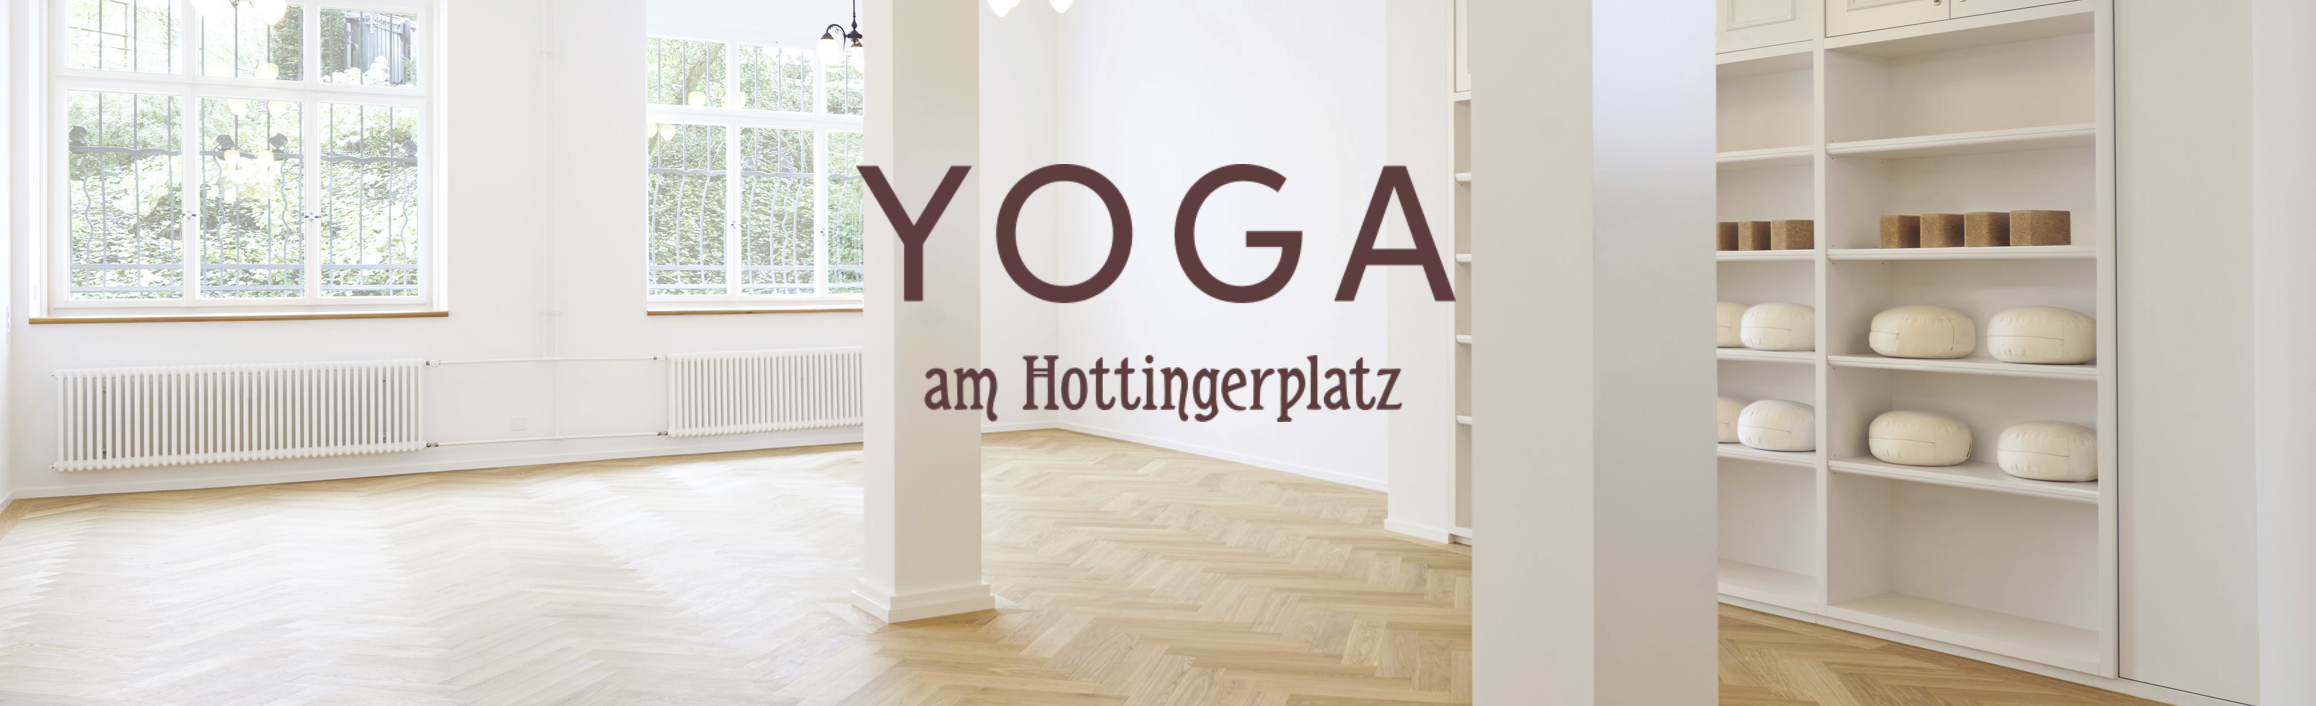 Yoga am Hottingerplatz